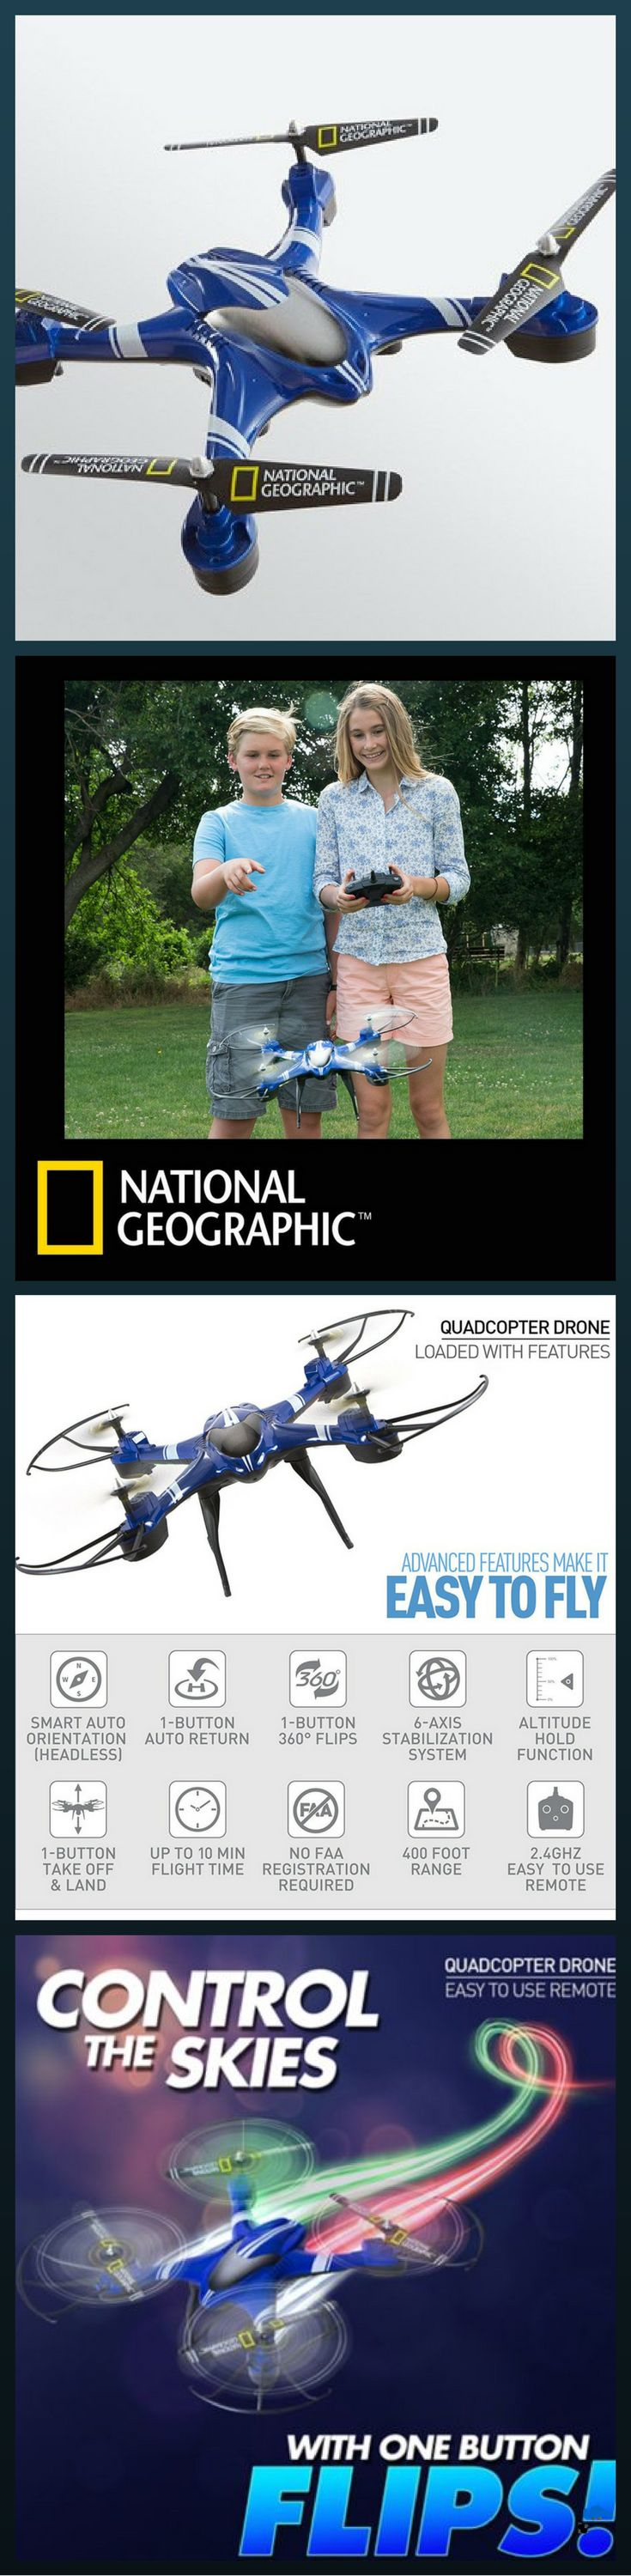 National Geographic Quadcopter Drone - With Auto-Orientation and 1-Button Take-Off for Easy Drone Flight - 360 Degree Flips - Altitude Hold - Great for Kids and New Pilots